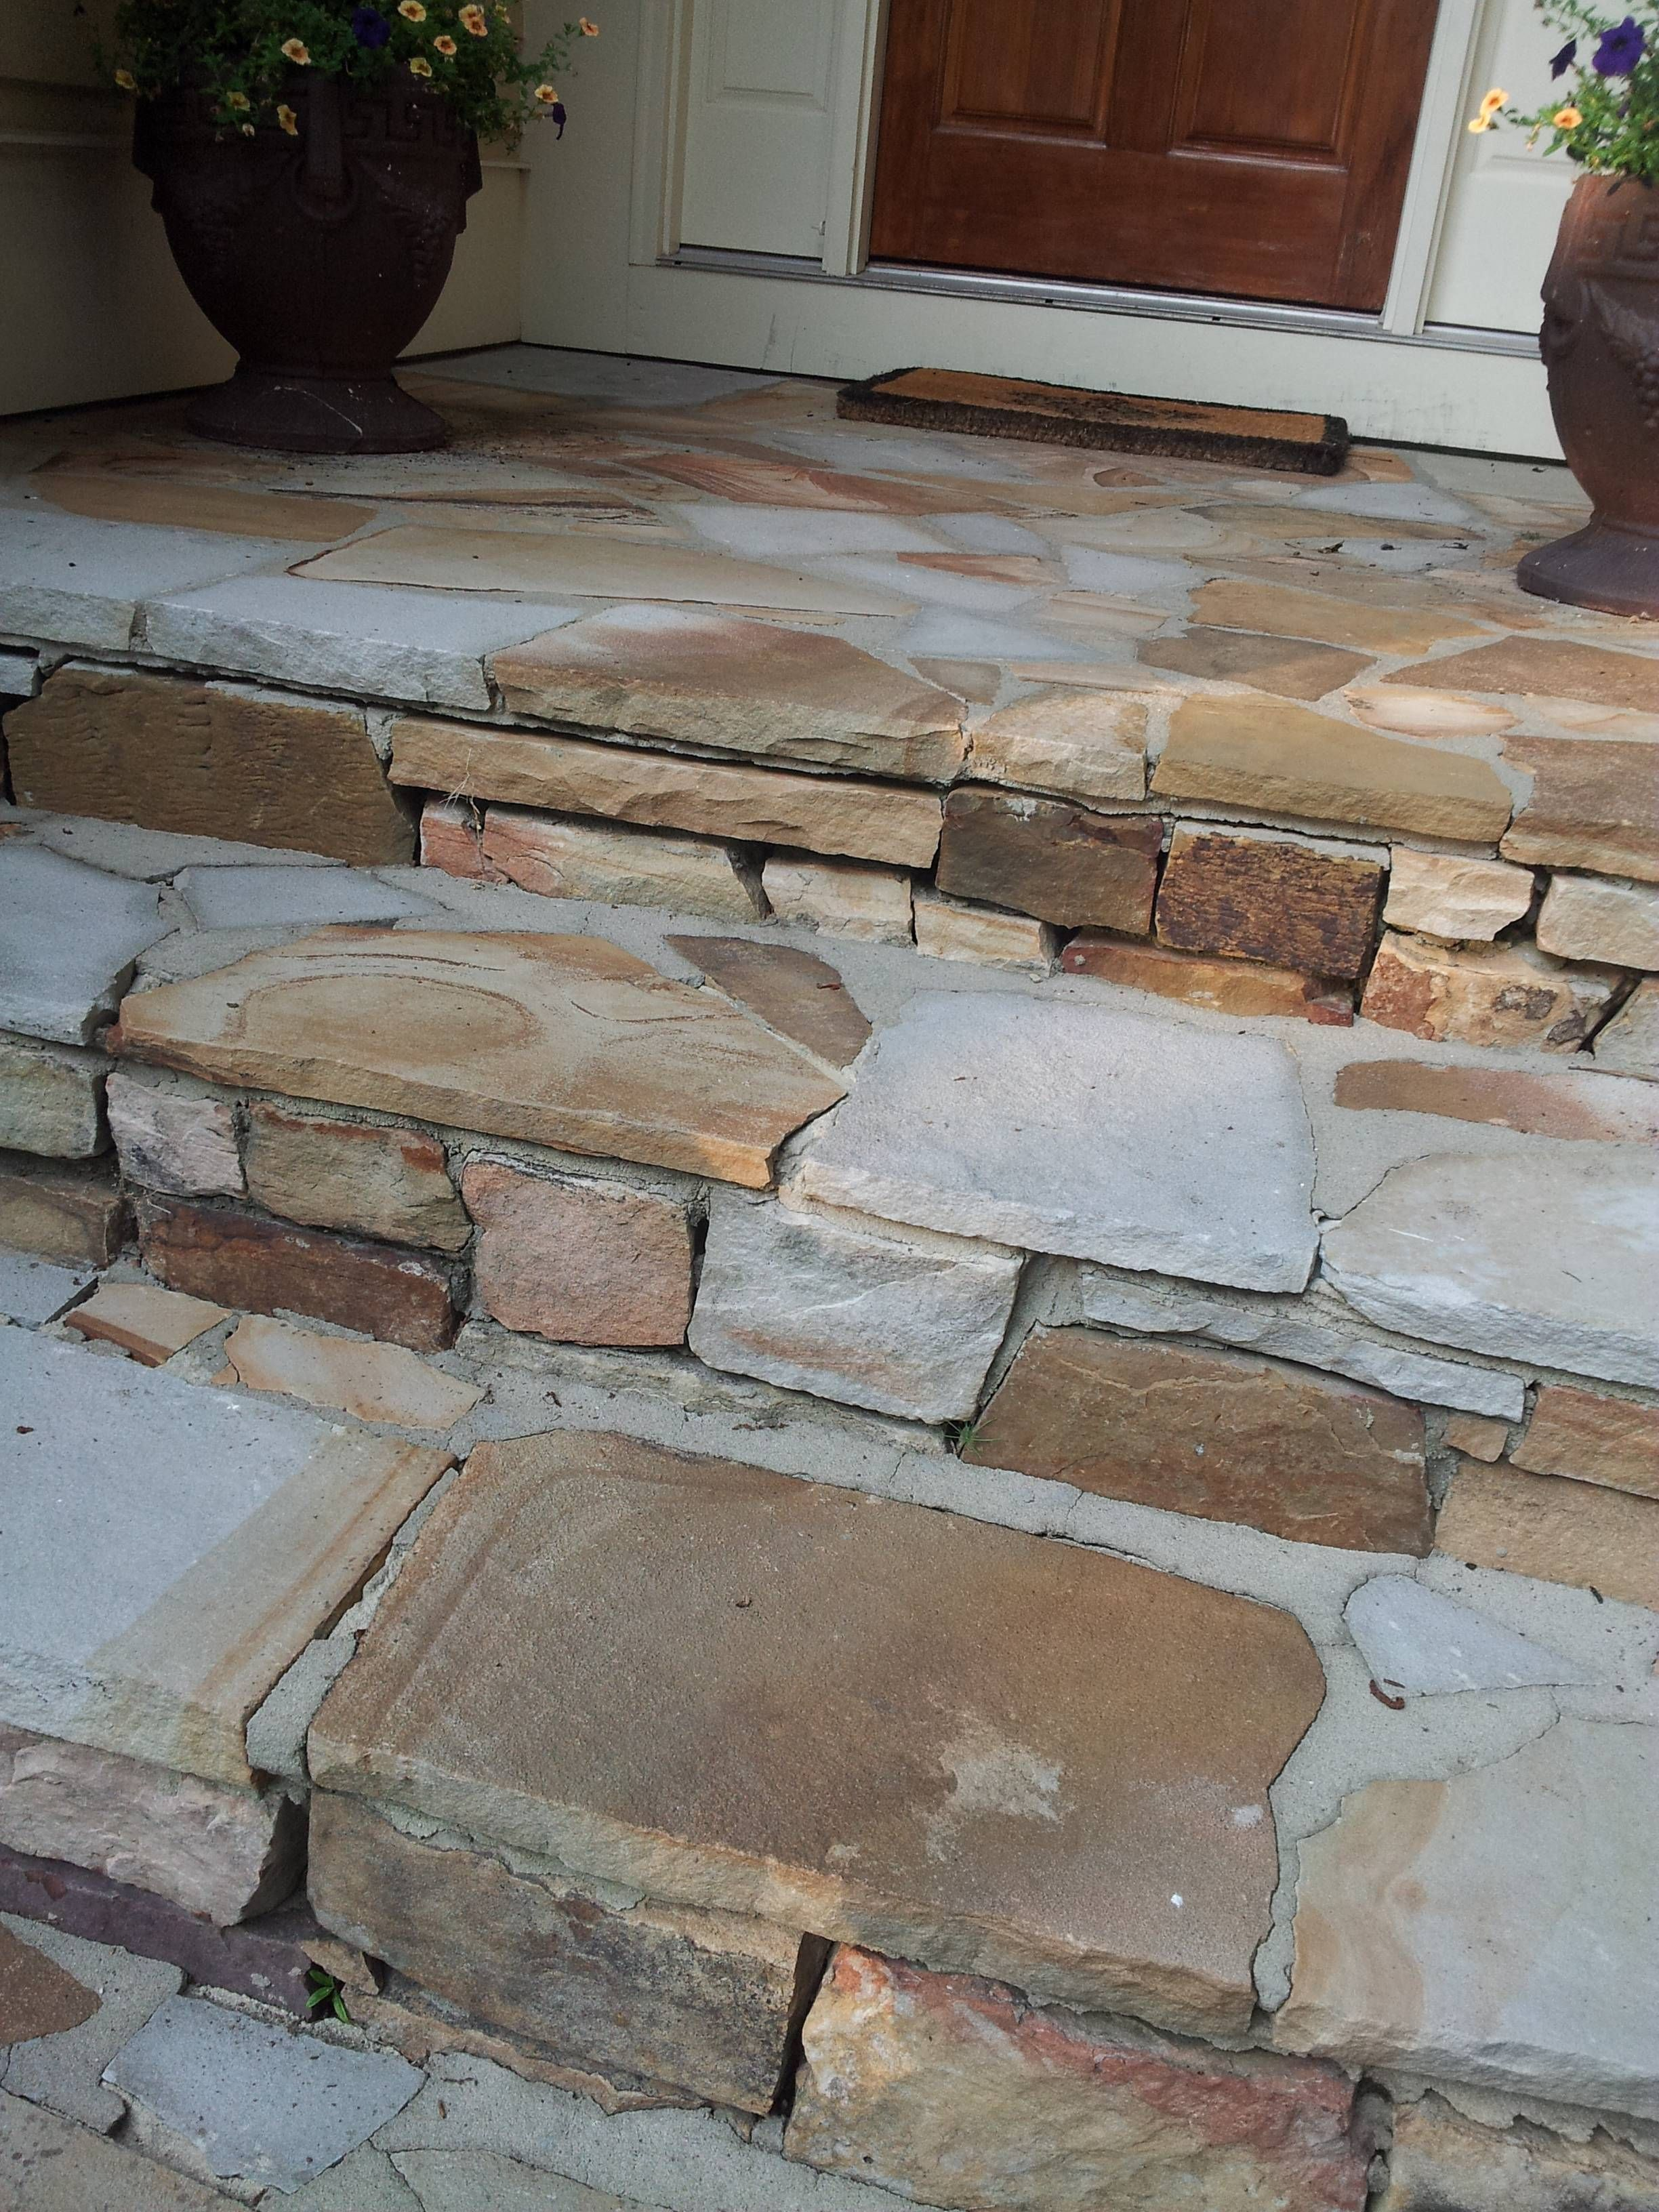 Repairing Crumblling Mortar In Flagstone Walkway Steps Masonry Contractor Talk Flagstone Walkway Flagstone Steps Front Porch Steps